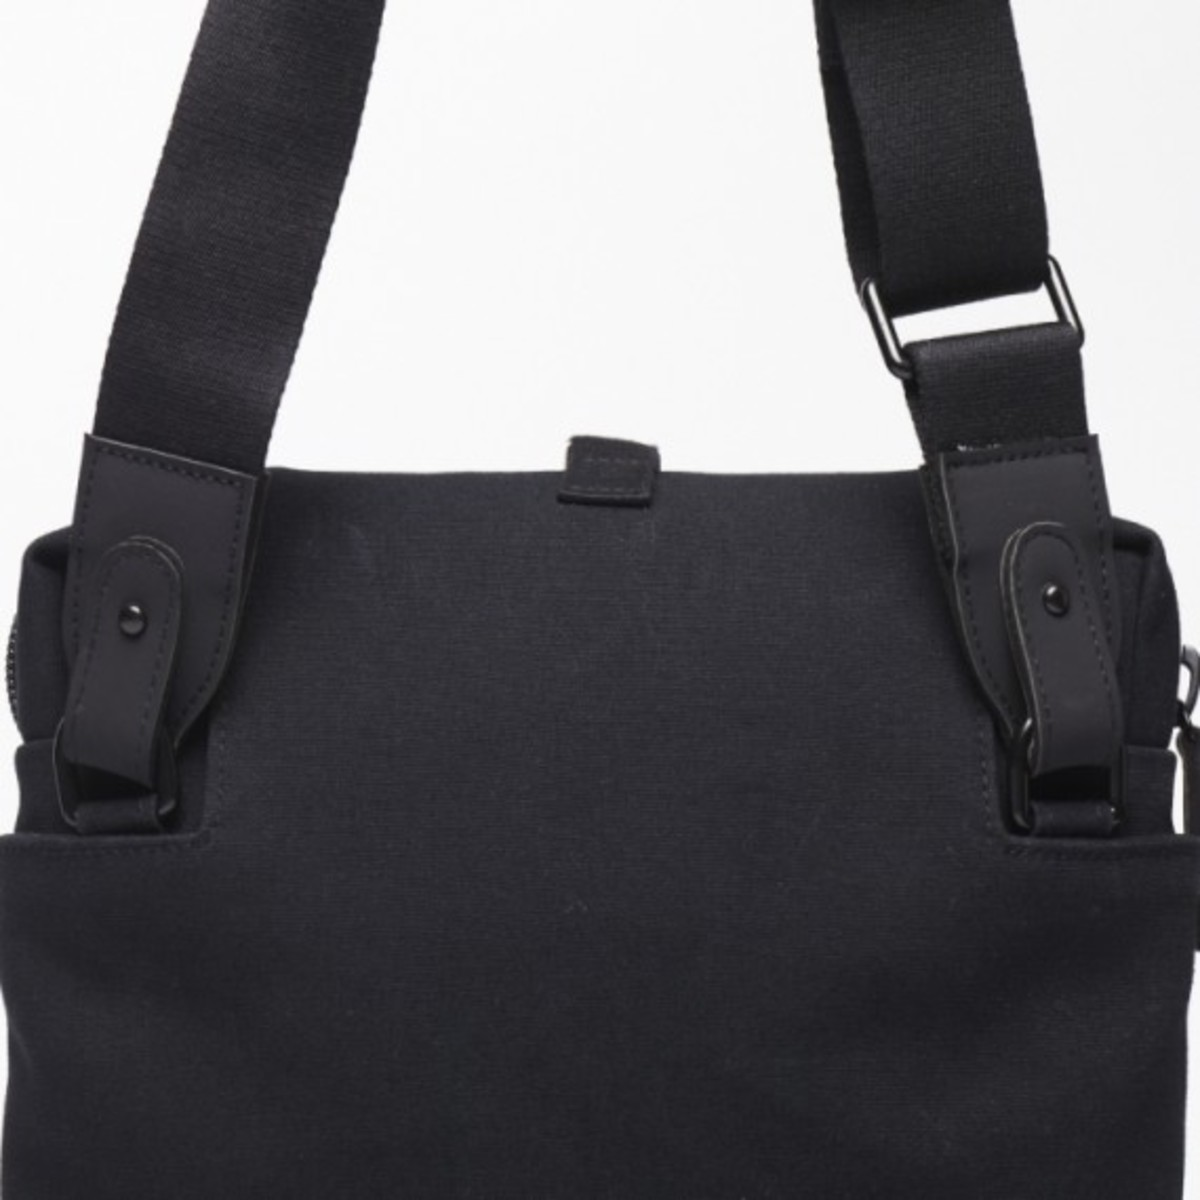 c6-bag-collection-3